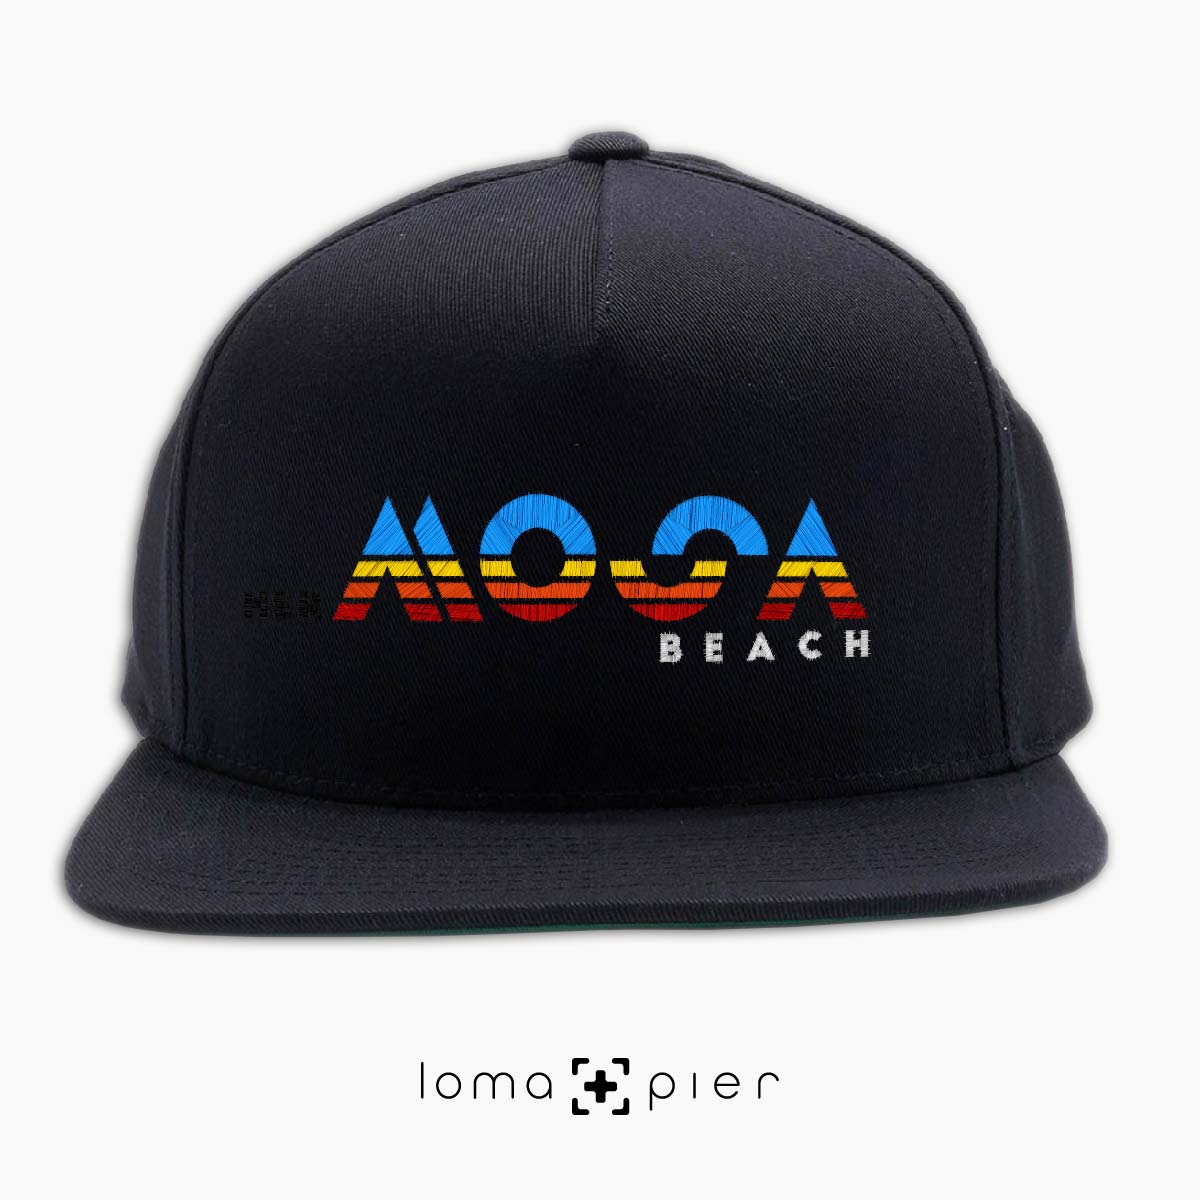 herMOSA beach hat by loma and pier hat shop